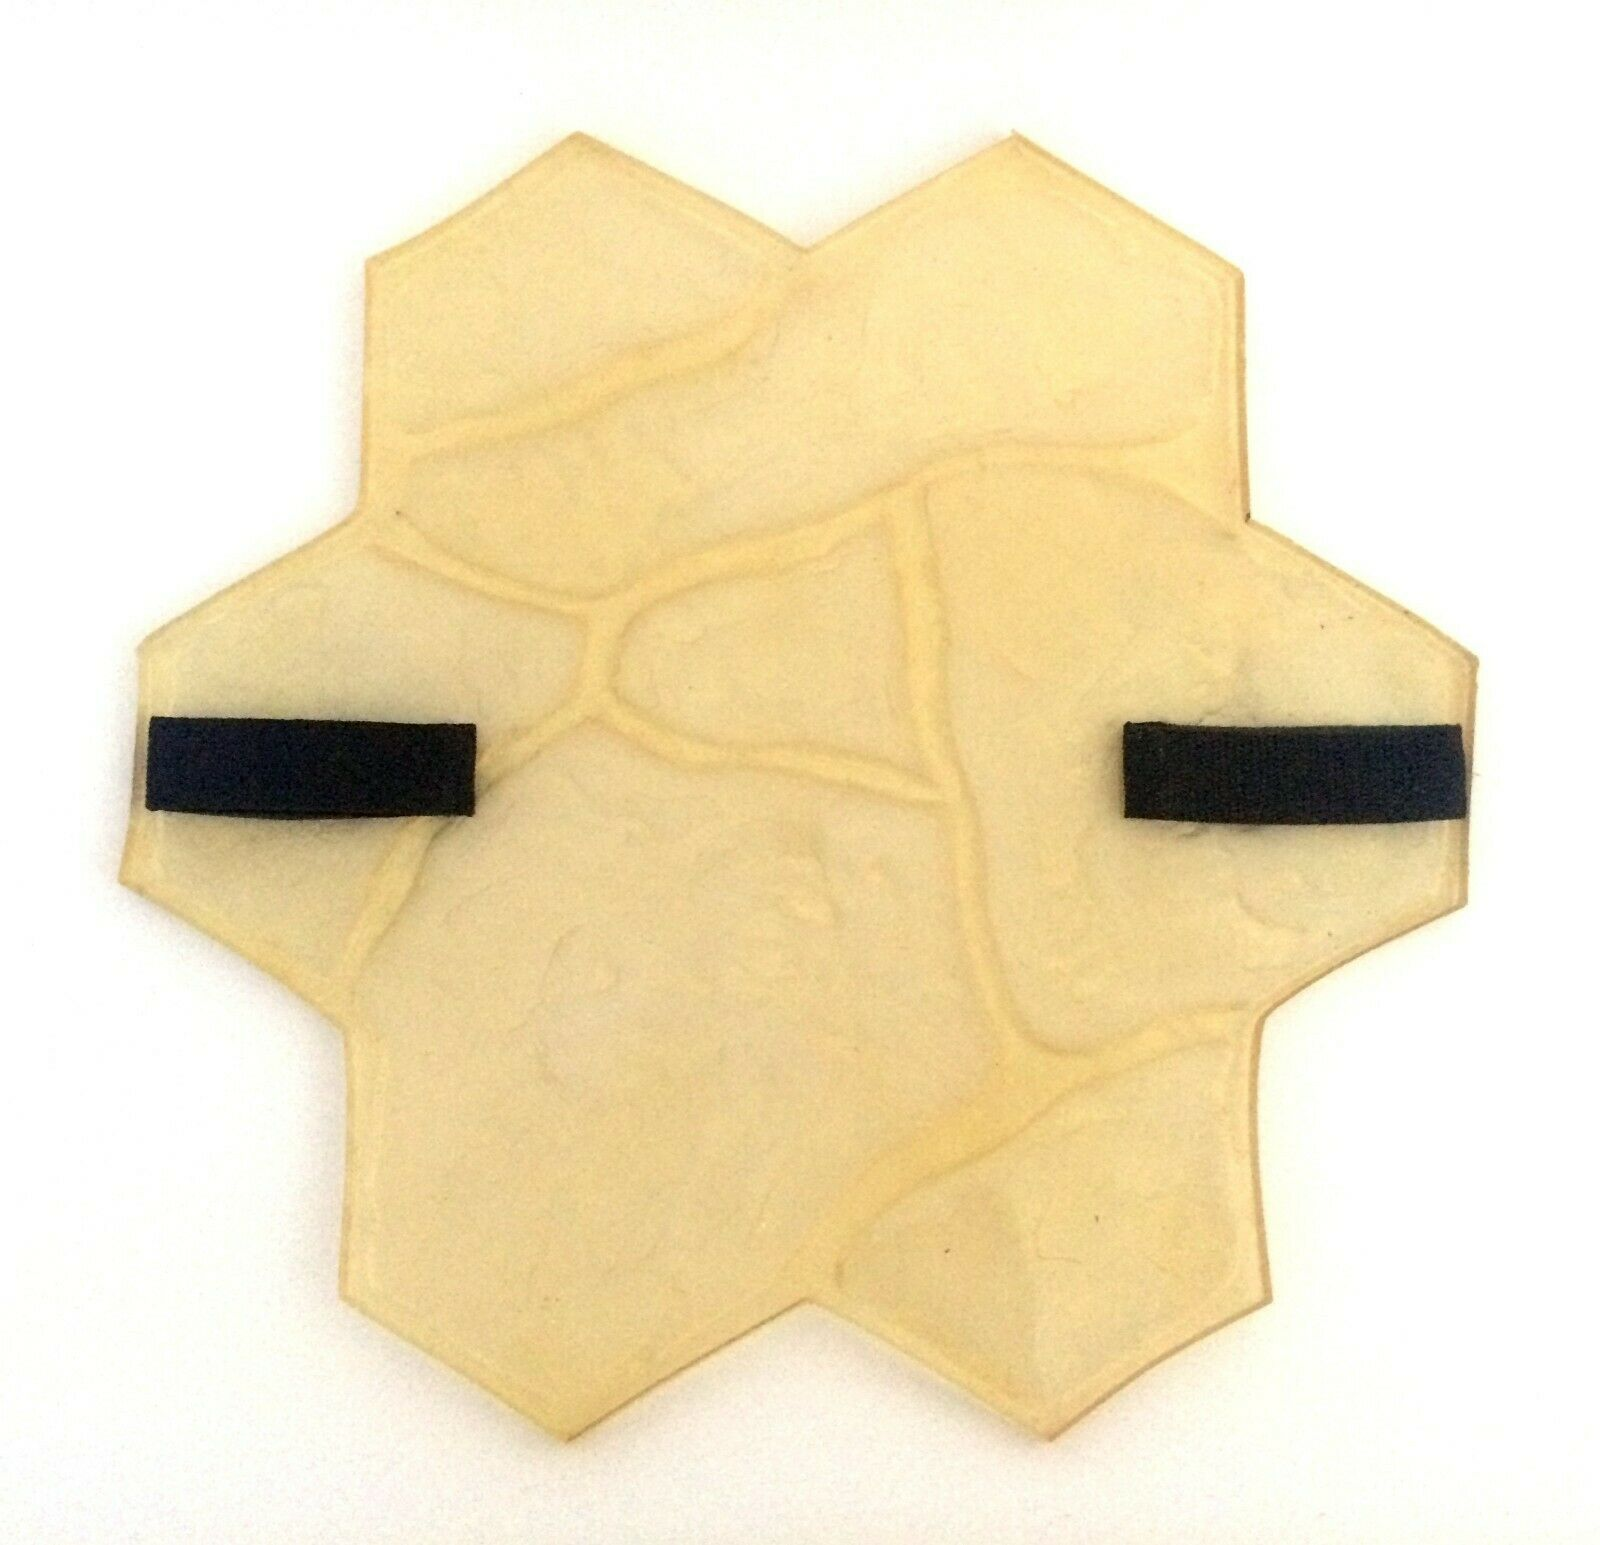 POLYURETHANE RUBBER STAMP STONE Flower for Printing on CONCRETE CEMENT Grünical